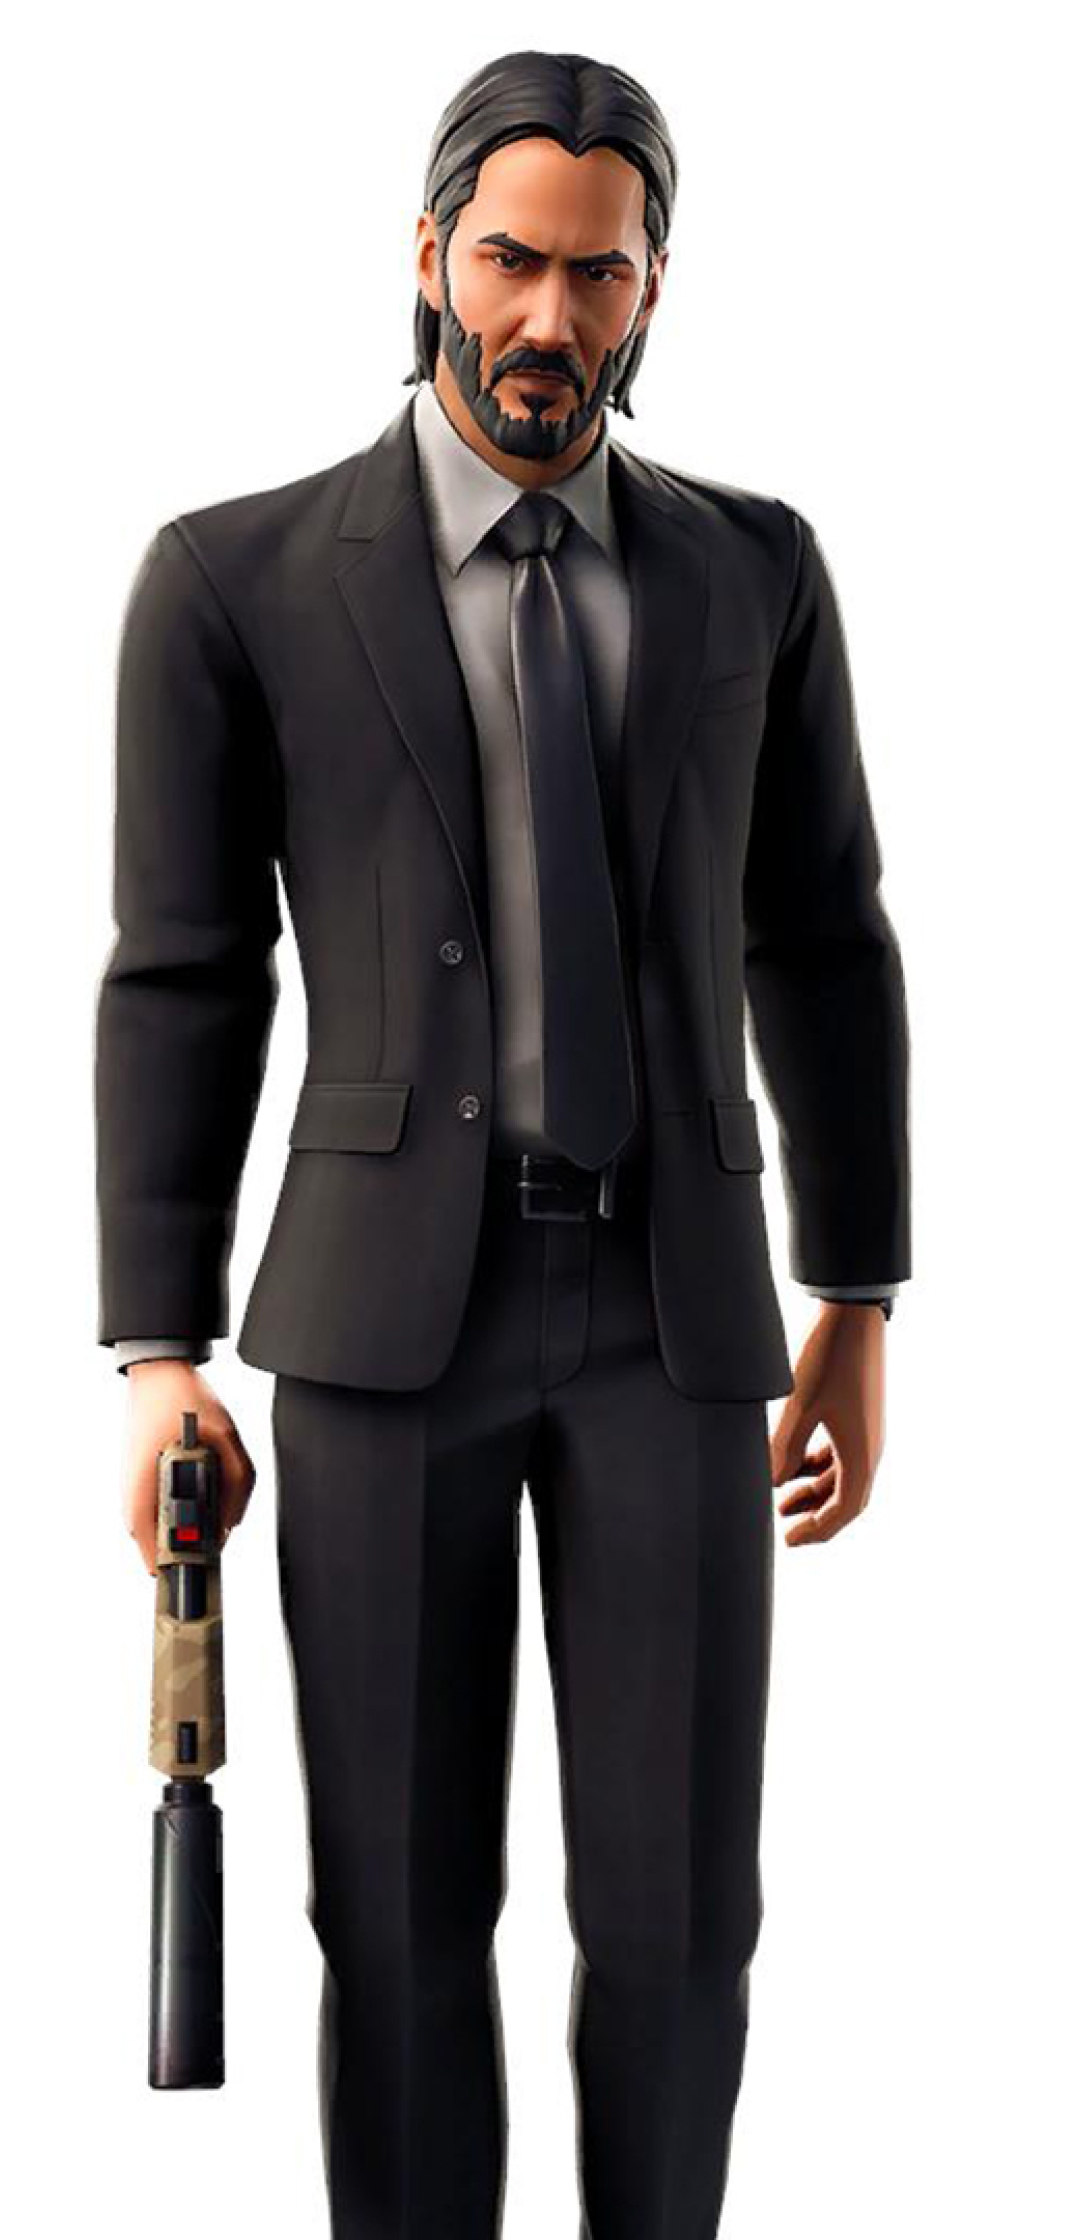 1080x2240 Fortnite John Wick Skin 1080x2240 Resolution Wallpaper Hd Games 4k Wallpapers Images Photos And Background